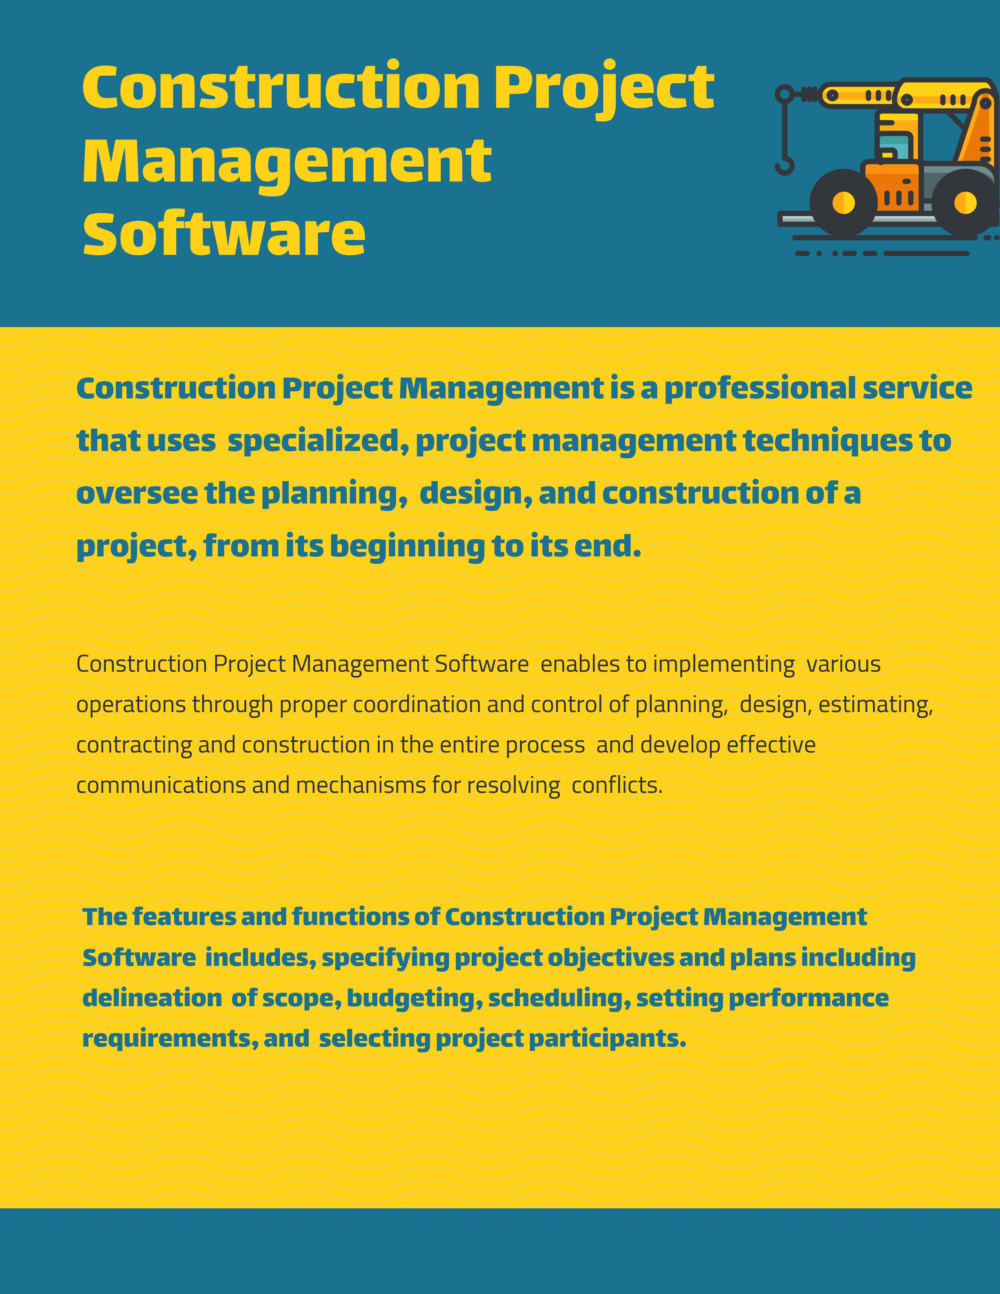 What are Construction Project Management Software